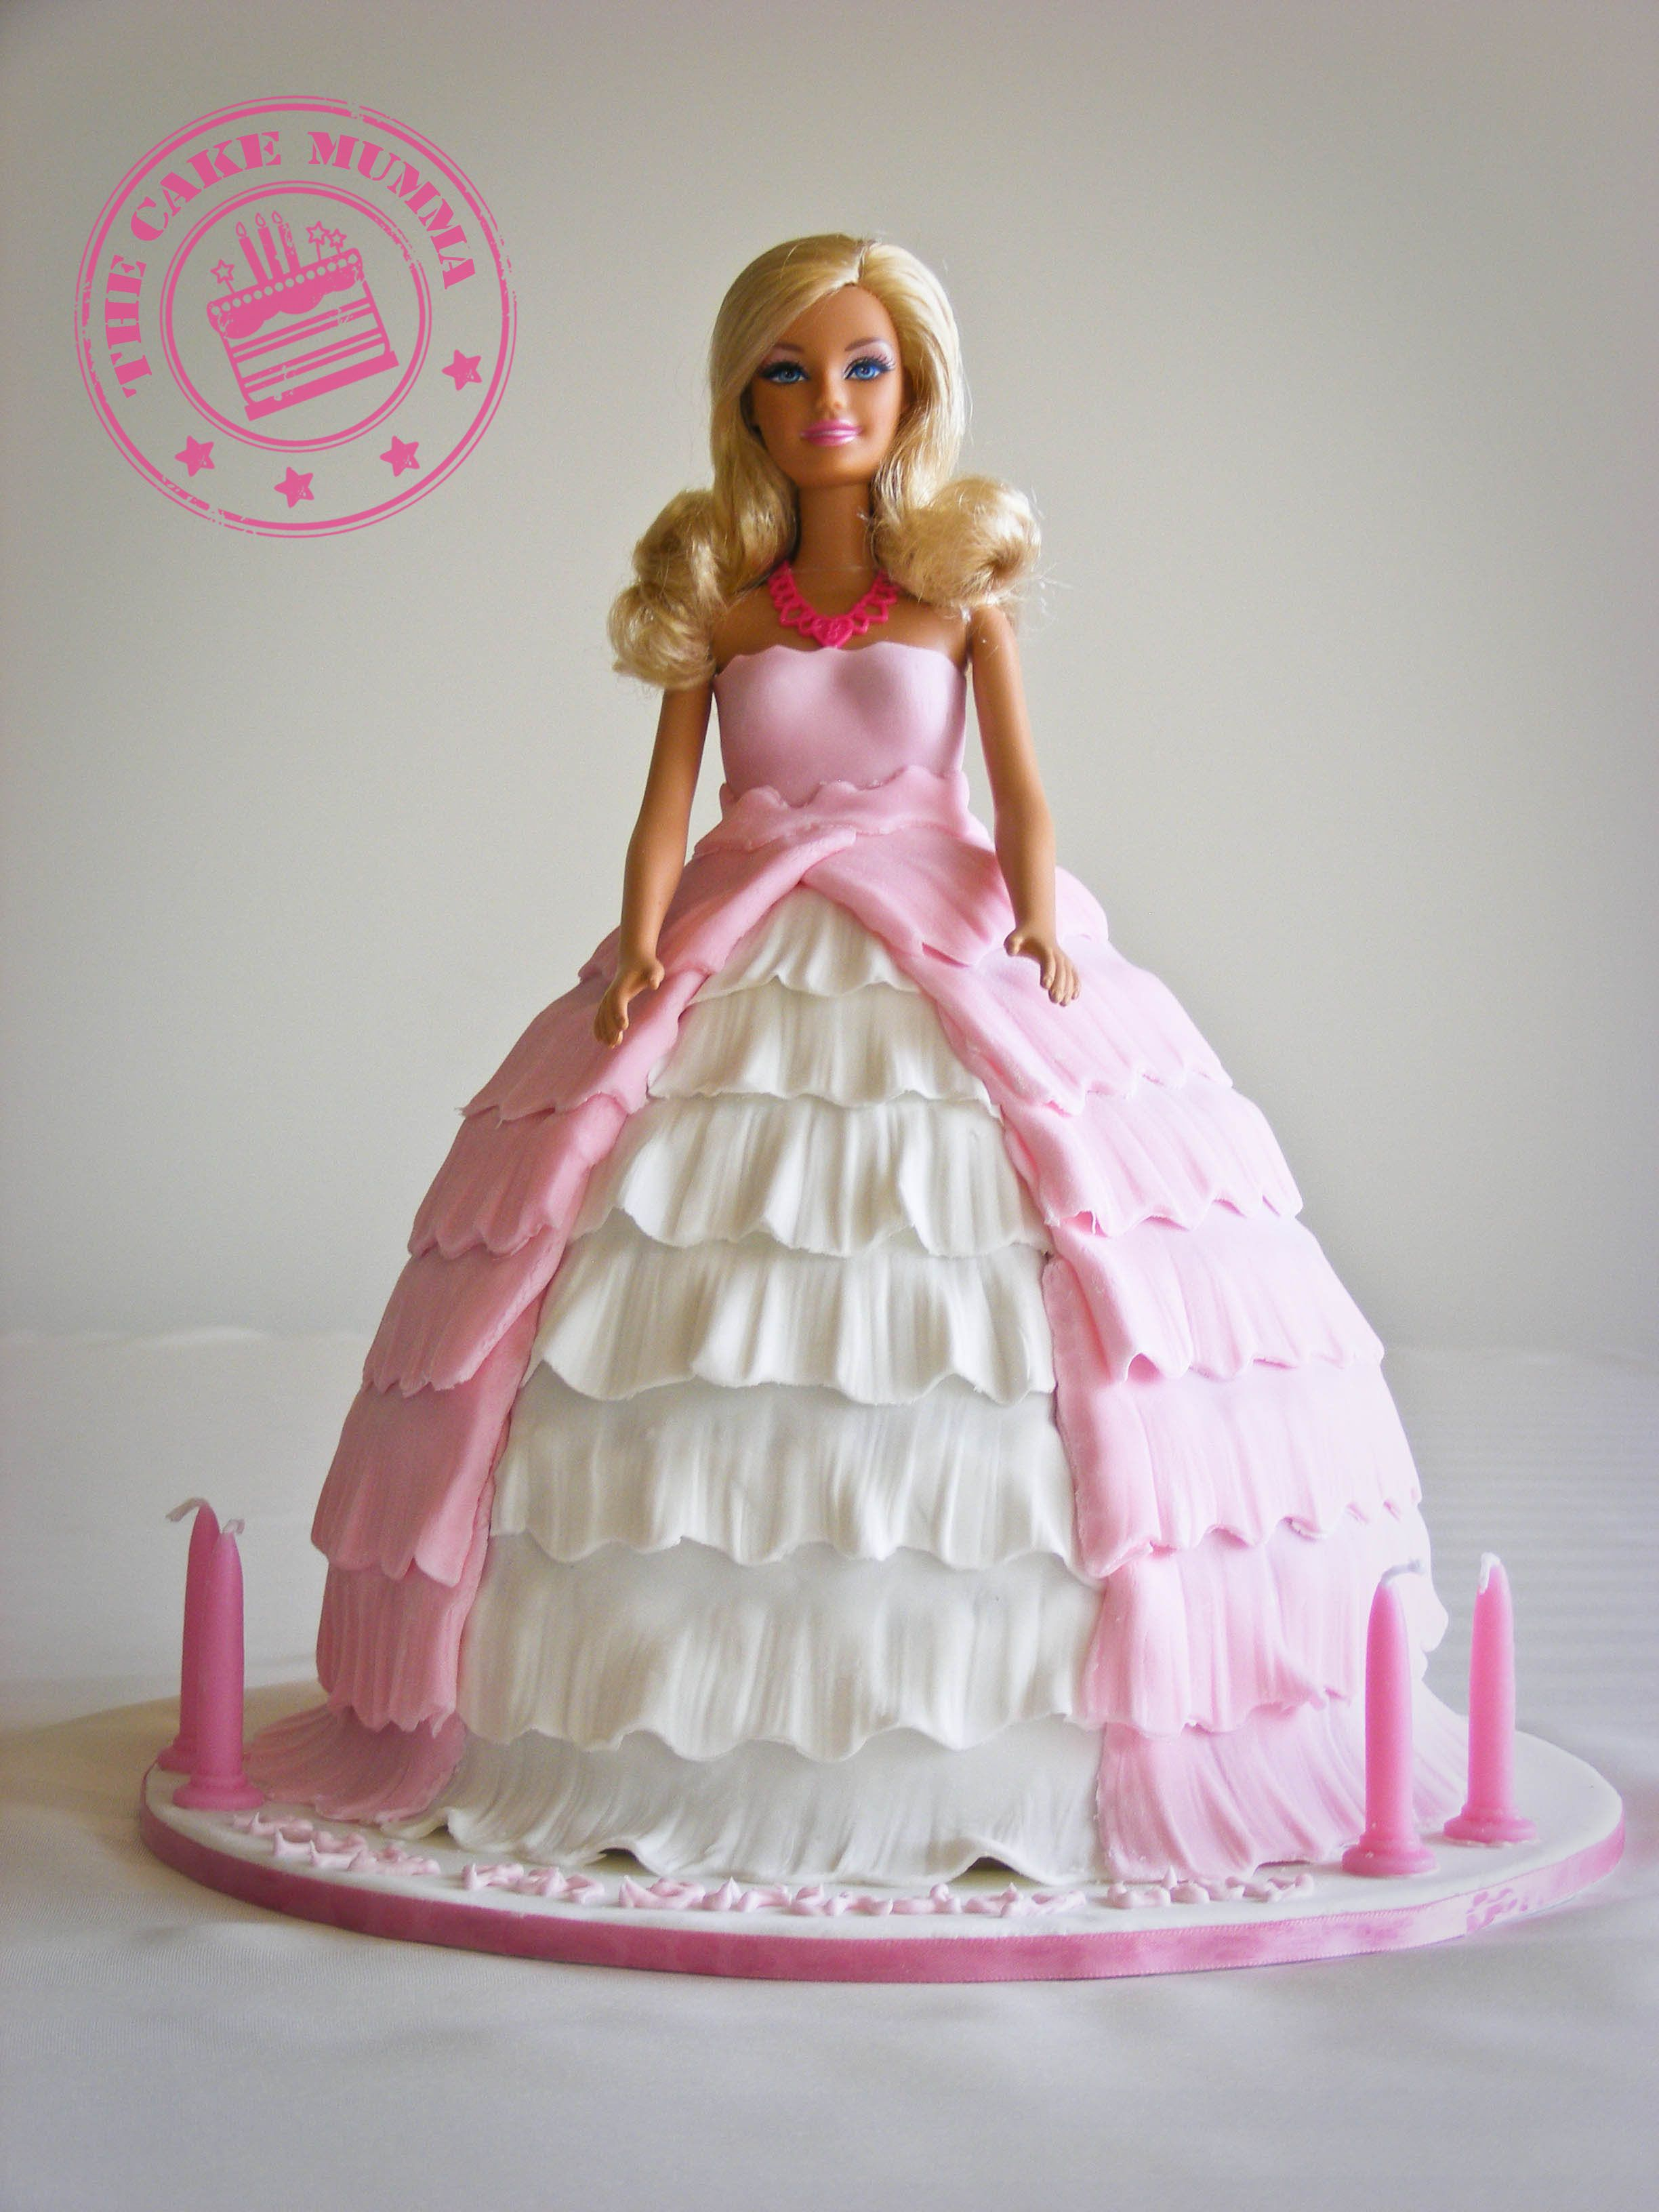 Barbie Birthday Cakes Barbie Cake A Gorgeous Birthday Cake For A 4 Year Old Girl Barbie